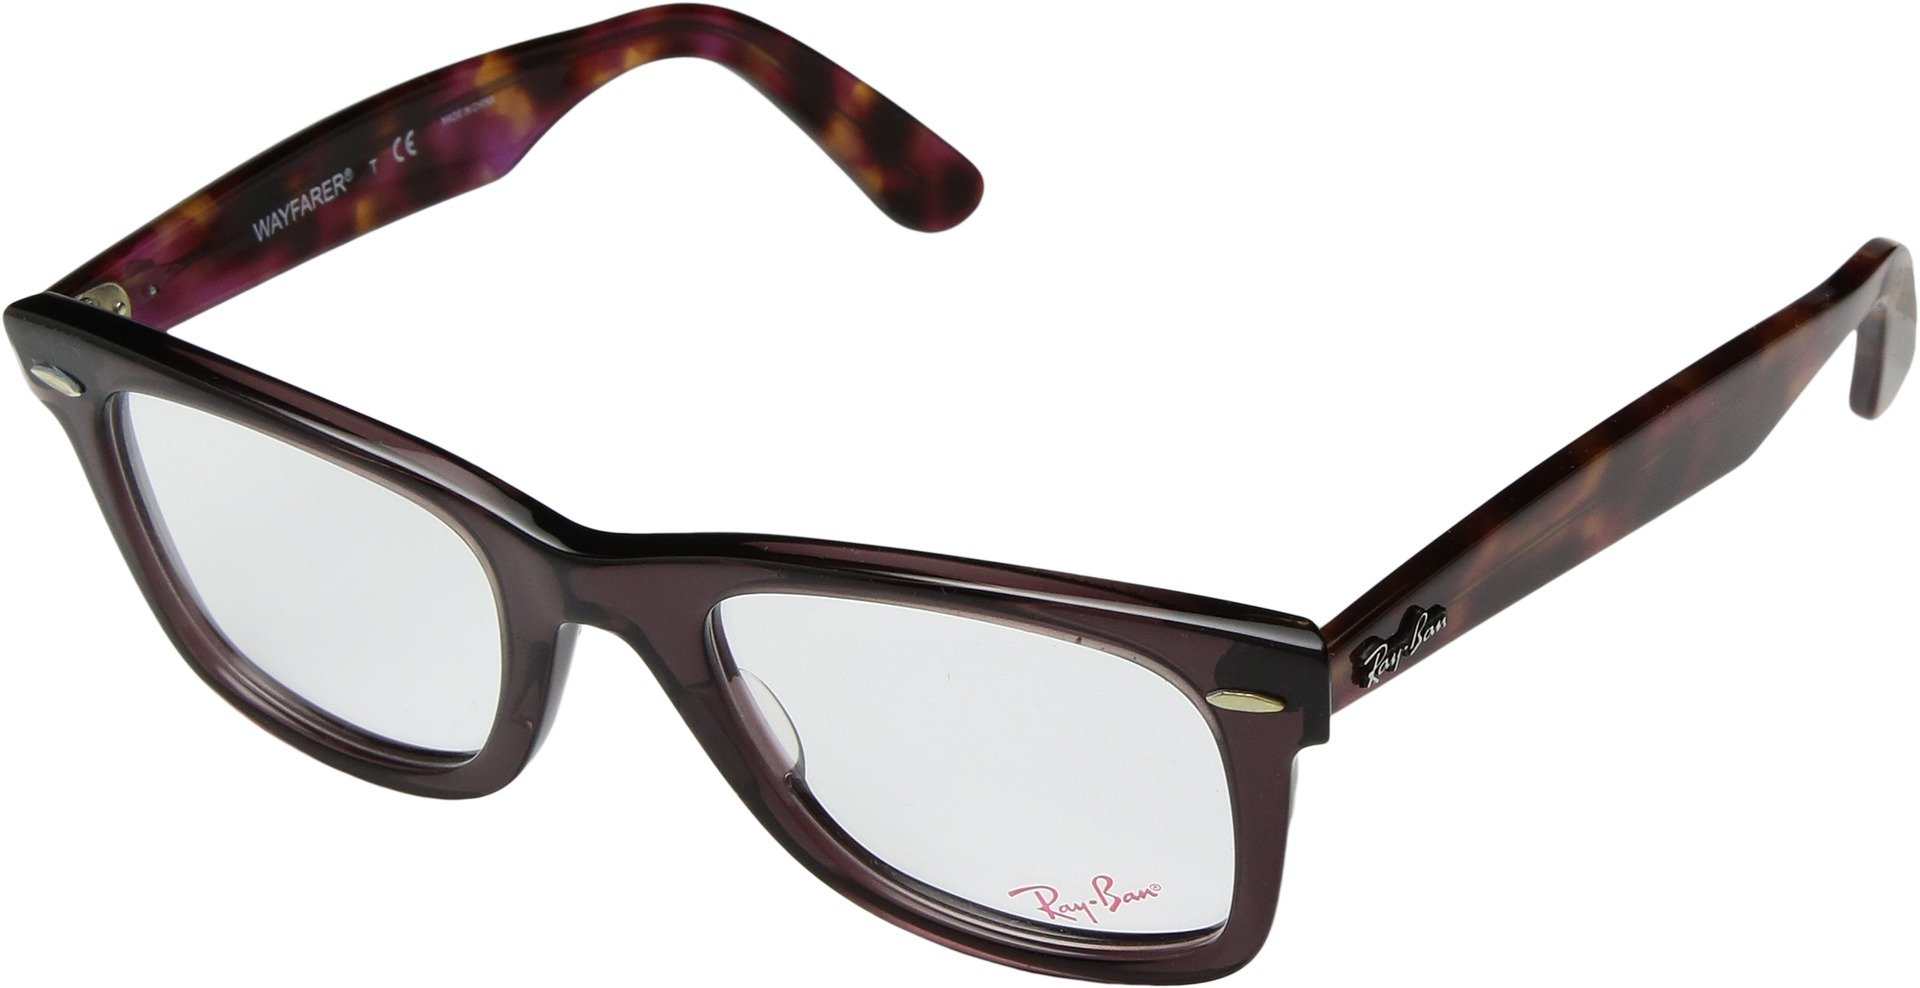 Ray-Ban RX5121 Wayfarer Eyeglasses Opal Brown 50mm